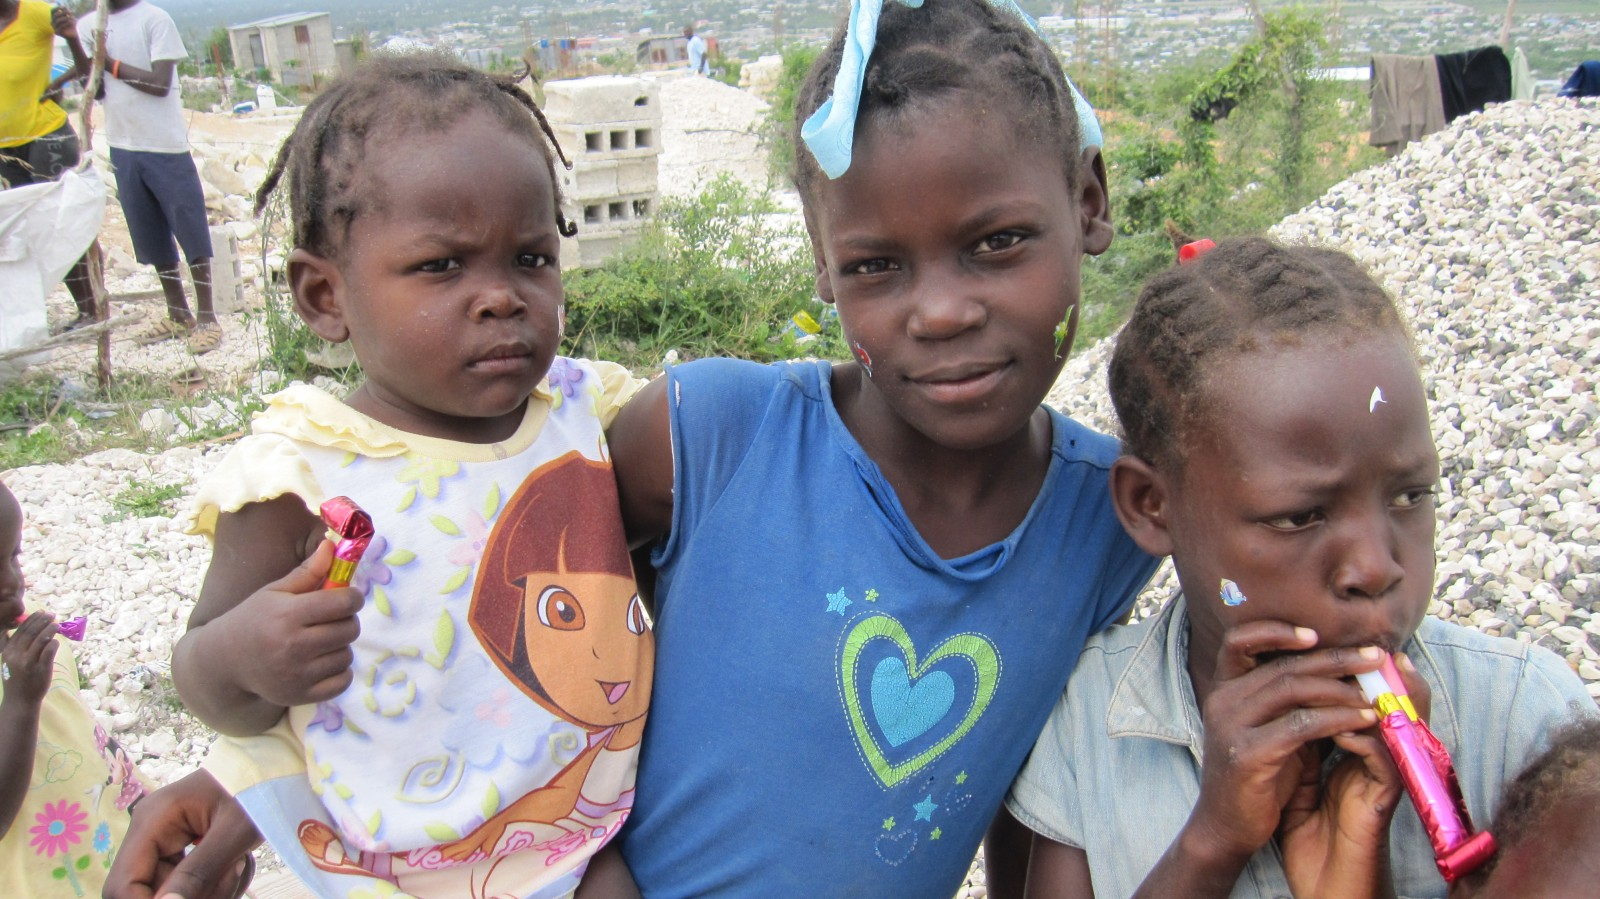 Haiti, 2014, Third World Awareness, TWA, volunteer, charity, helping others, poverty, Haitians, kids, fundraising, school building project, Canaan